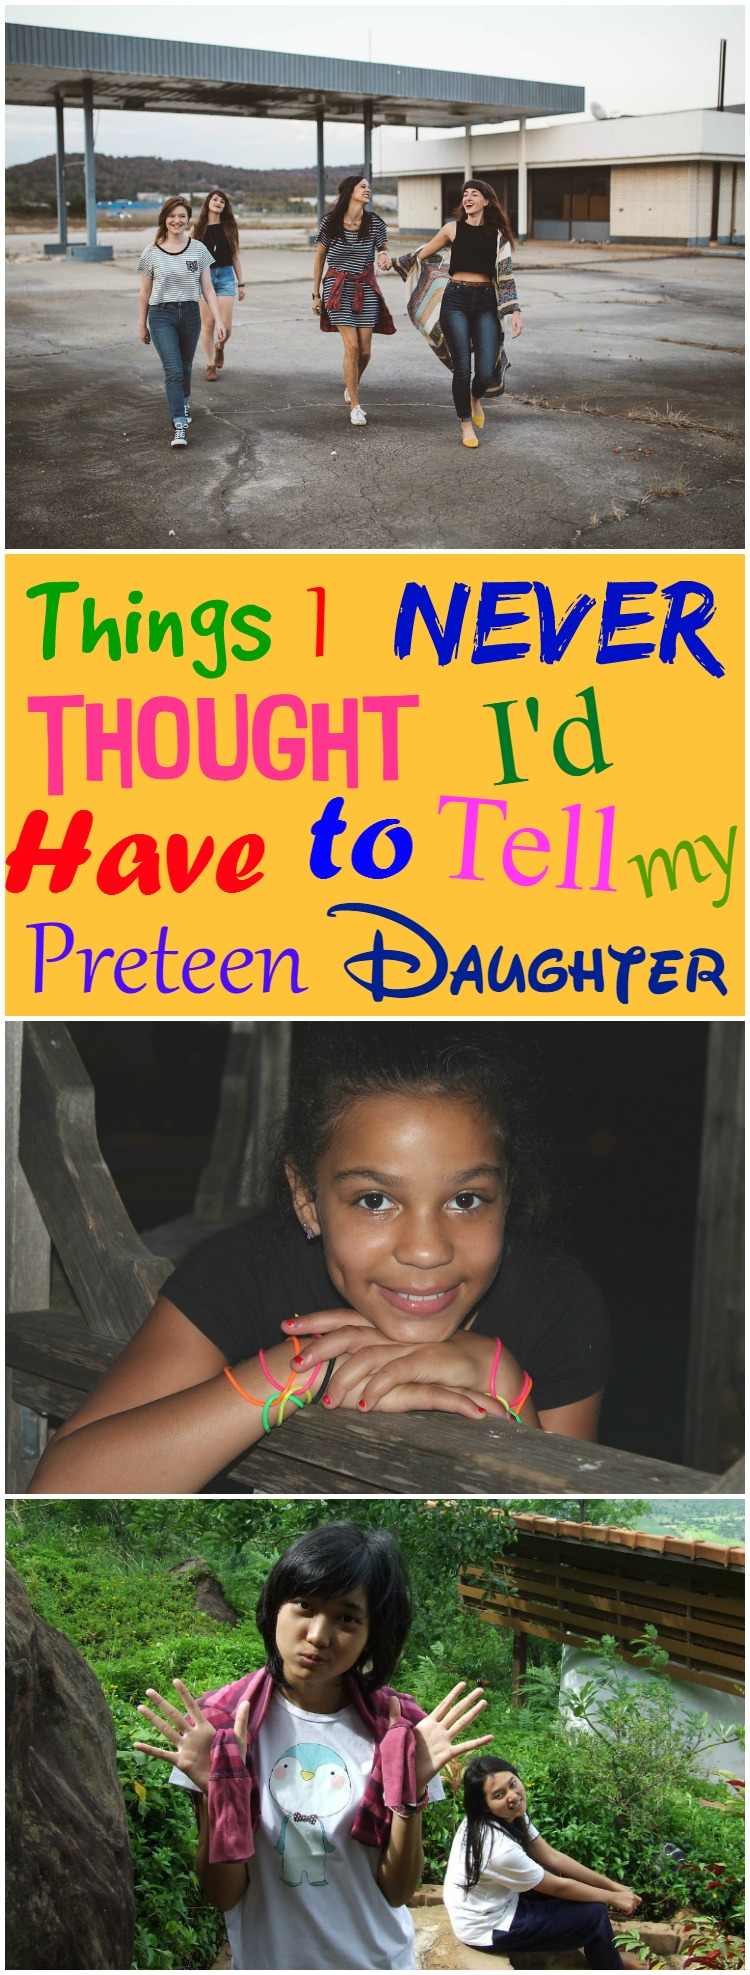 Amazing Things I Never Thought I'd Have to Tell My Preteen Daughter